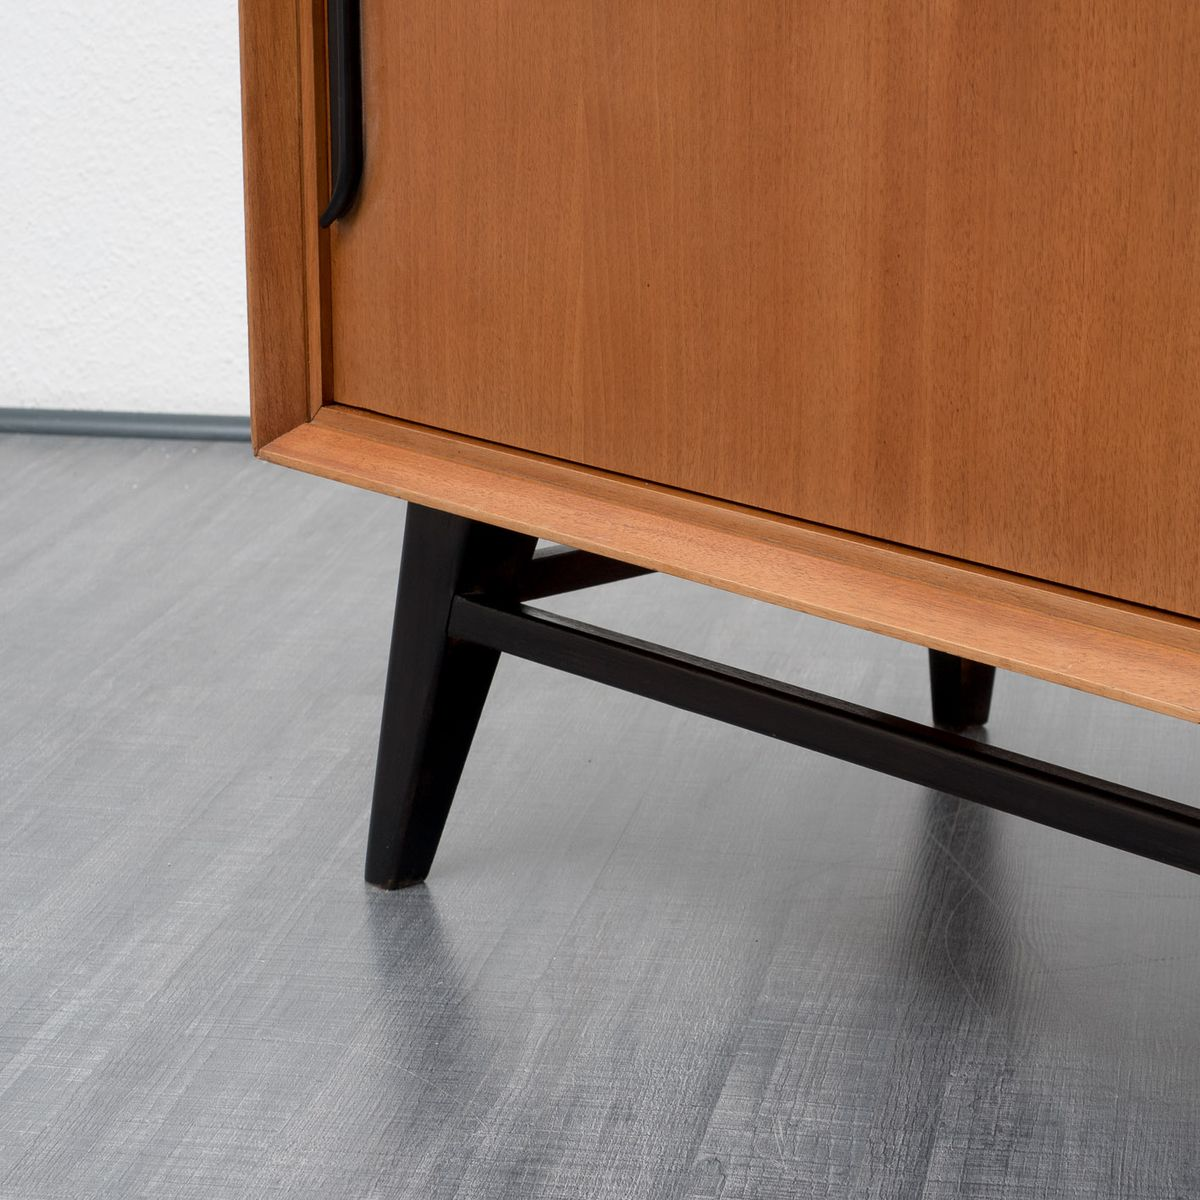 zweifarbiges sideboard aus teak schwarz lackiertem holz 1960er bei pamono kaufen. Black Bedroom Furniture Sets. Home Design Ideas